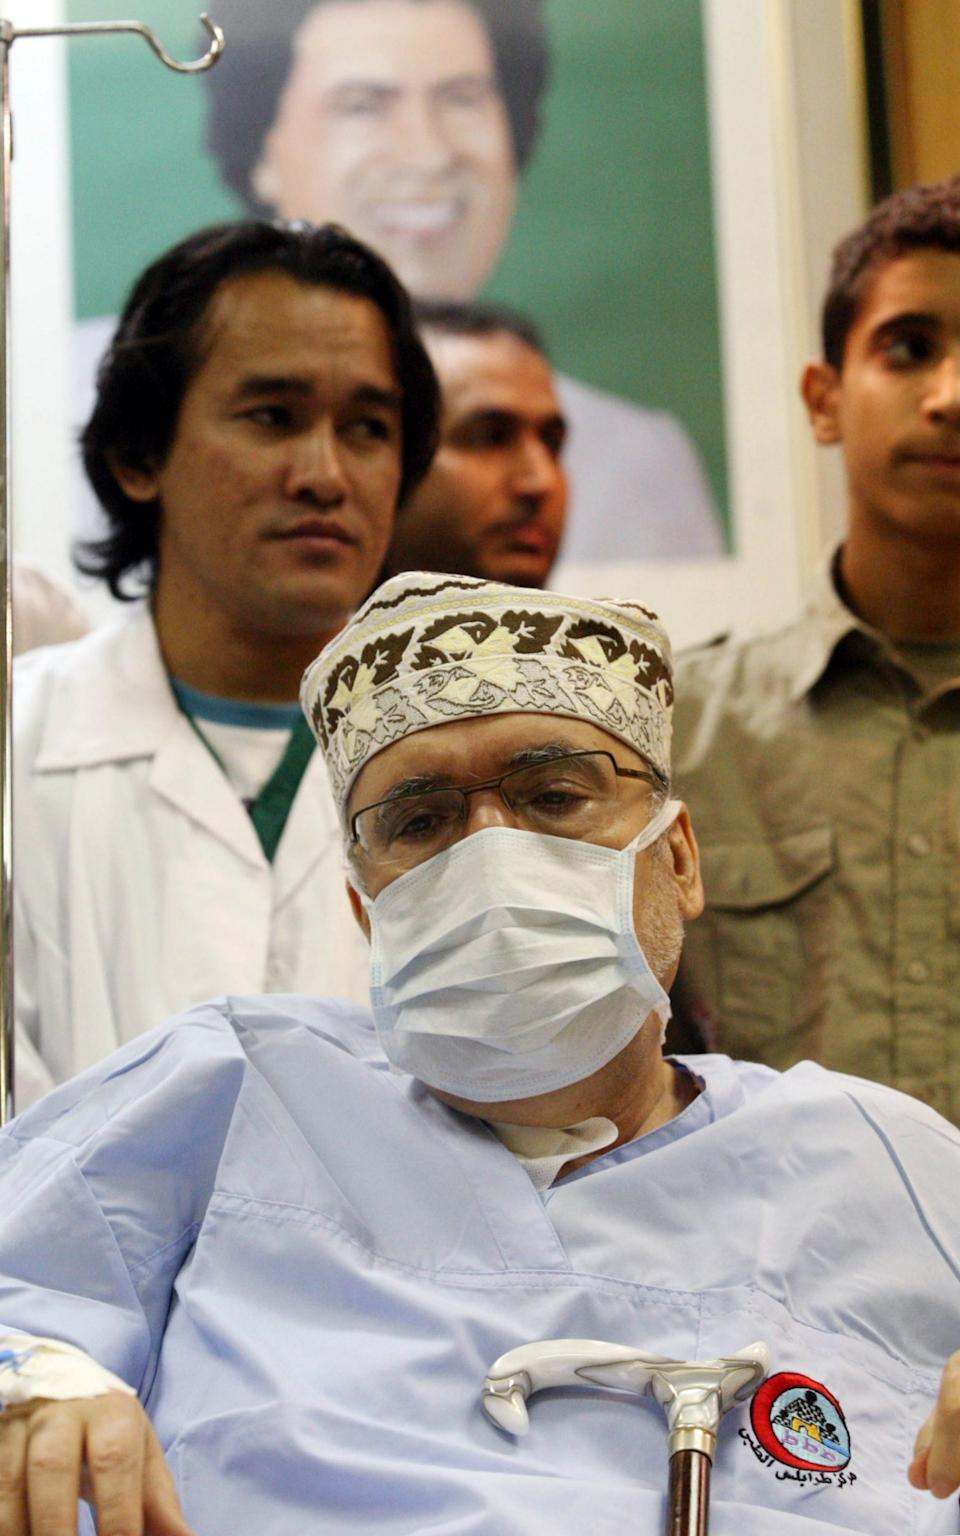 Abdelbaset Ali Mohmet al-Megrahi wears a medical mask as he sits on a wheelchair during a meeting with an African Delegation at a hospital in Tripoli on September 9, 2009 - MAHMUD TURKIA/AFP